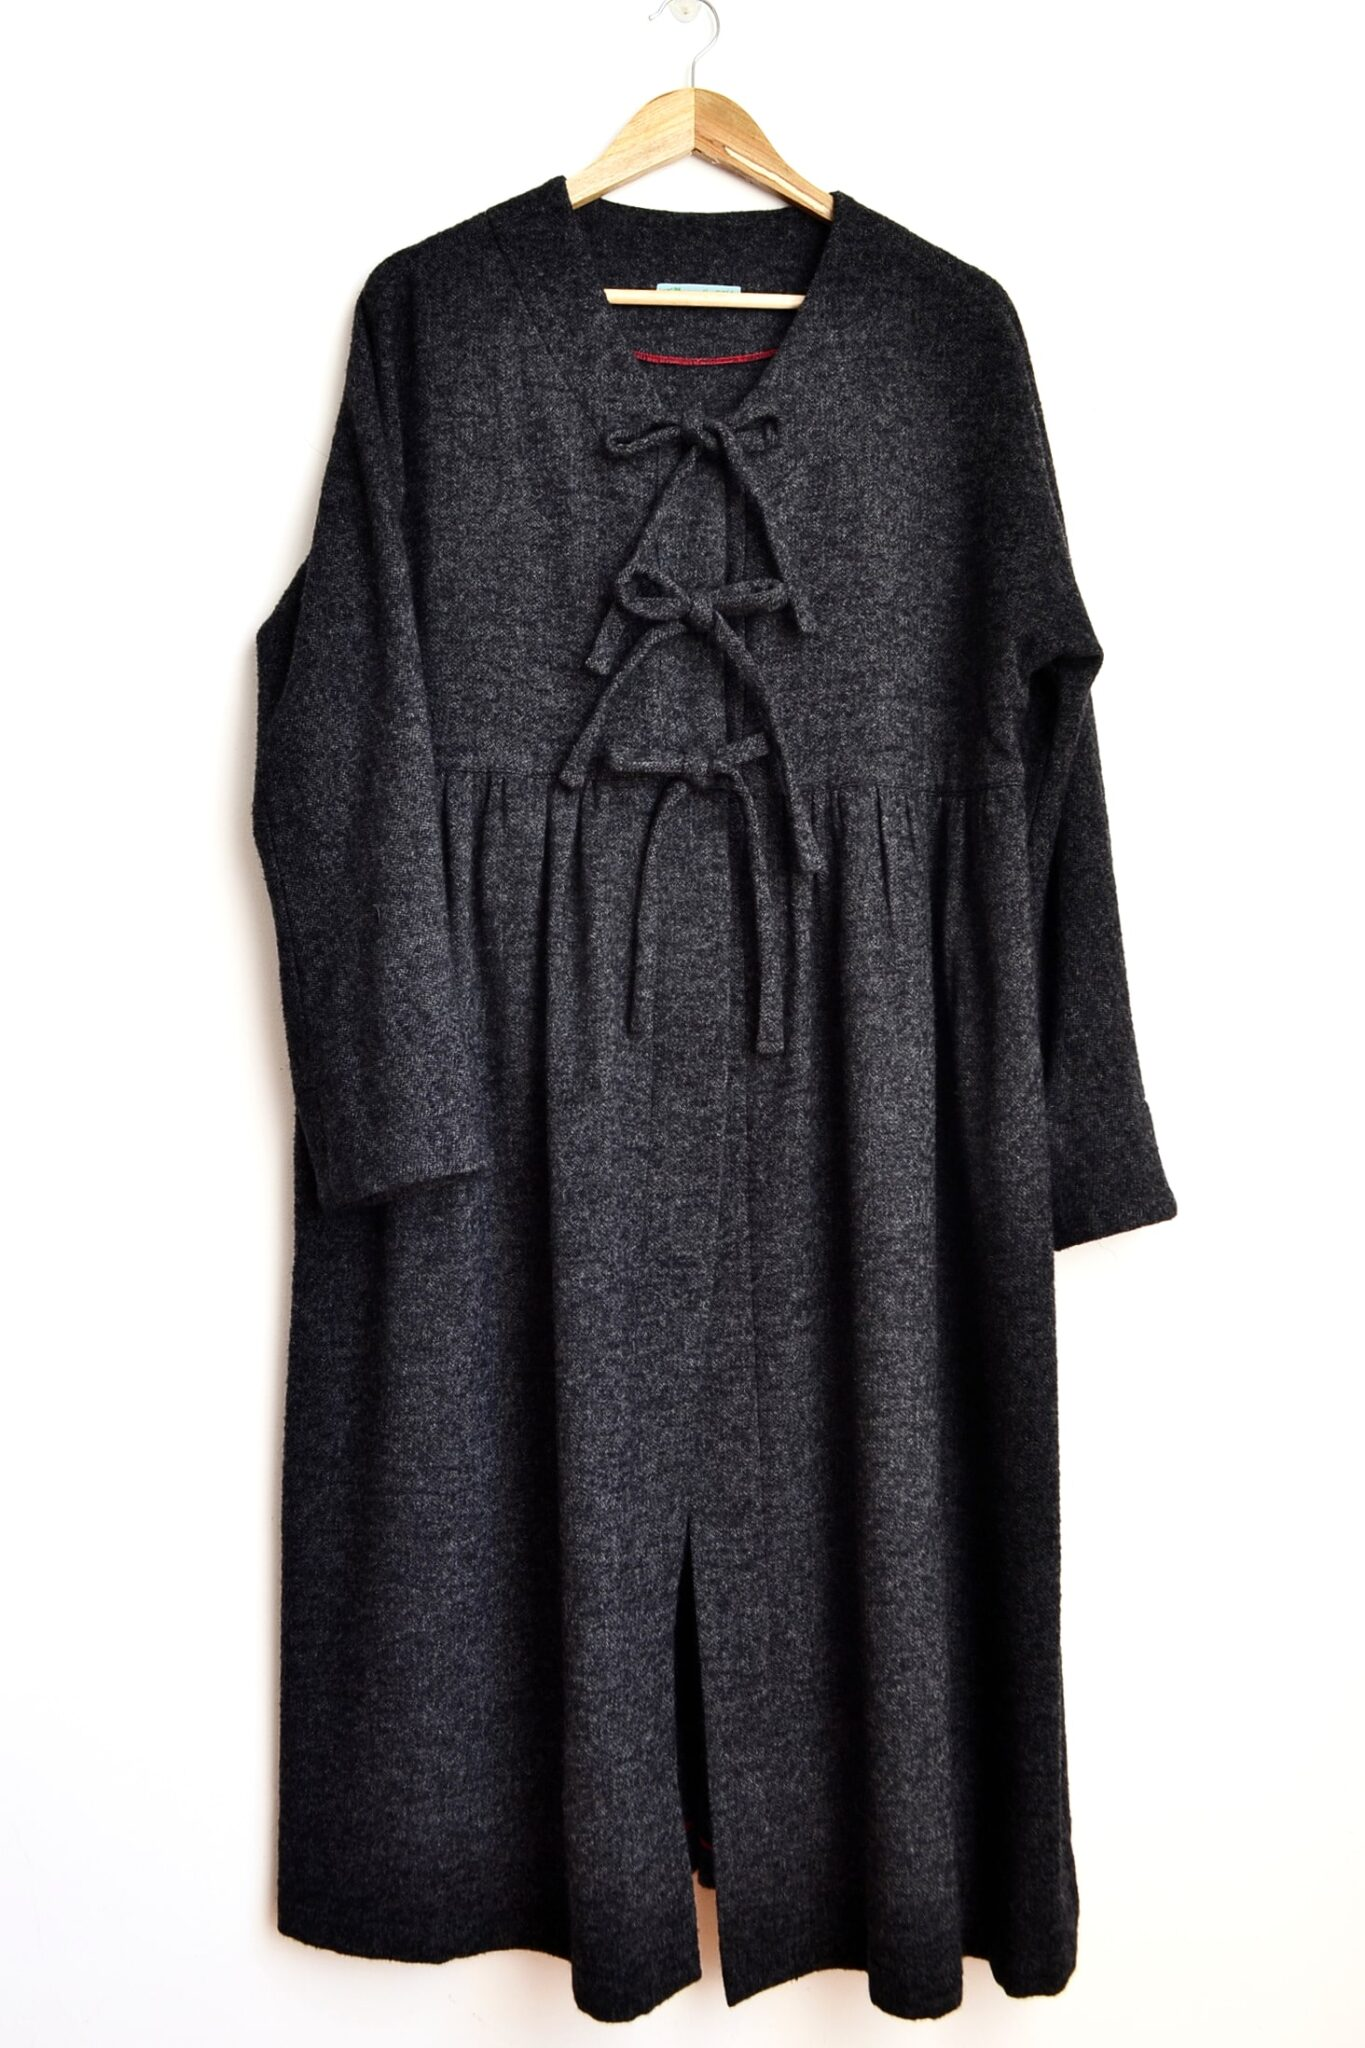 Blanket Coat, Black, Tapered Sleeve By à Pois